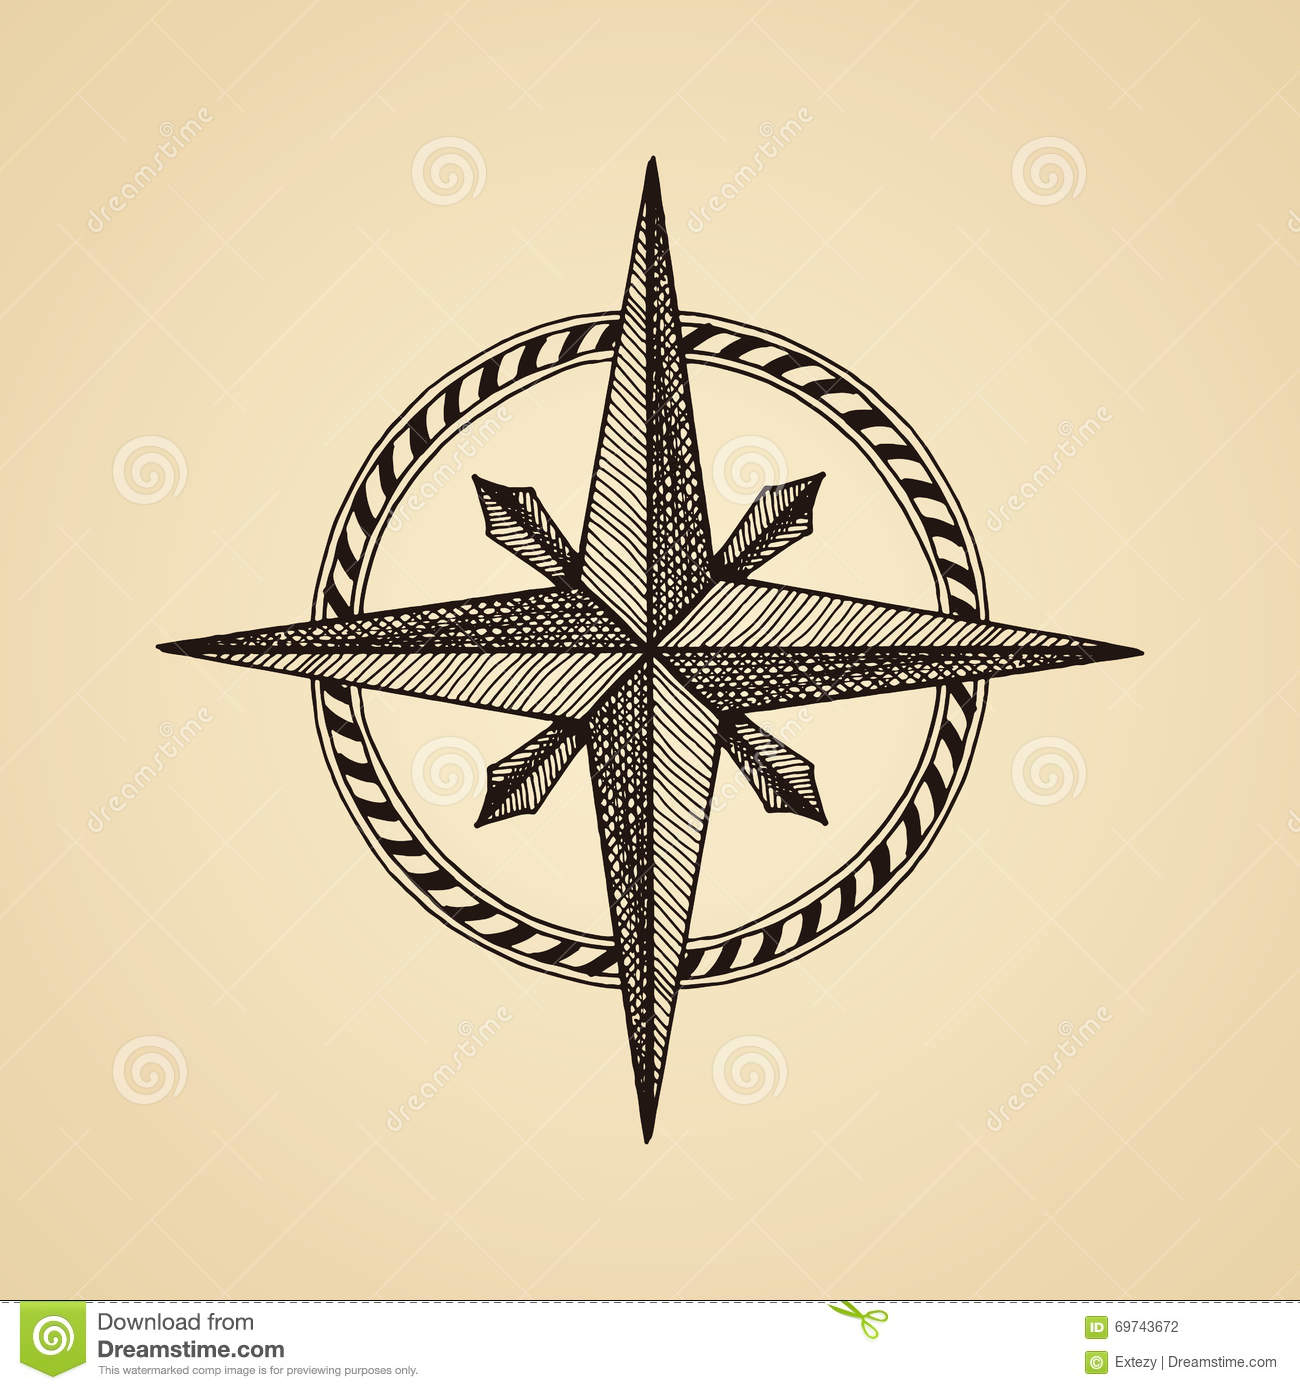 hand drawn compass wind rose symbol stock vector illustration of paper cartography 69743672. Black Bedroom Furniture Sets. Home Design Ideas